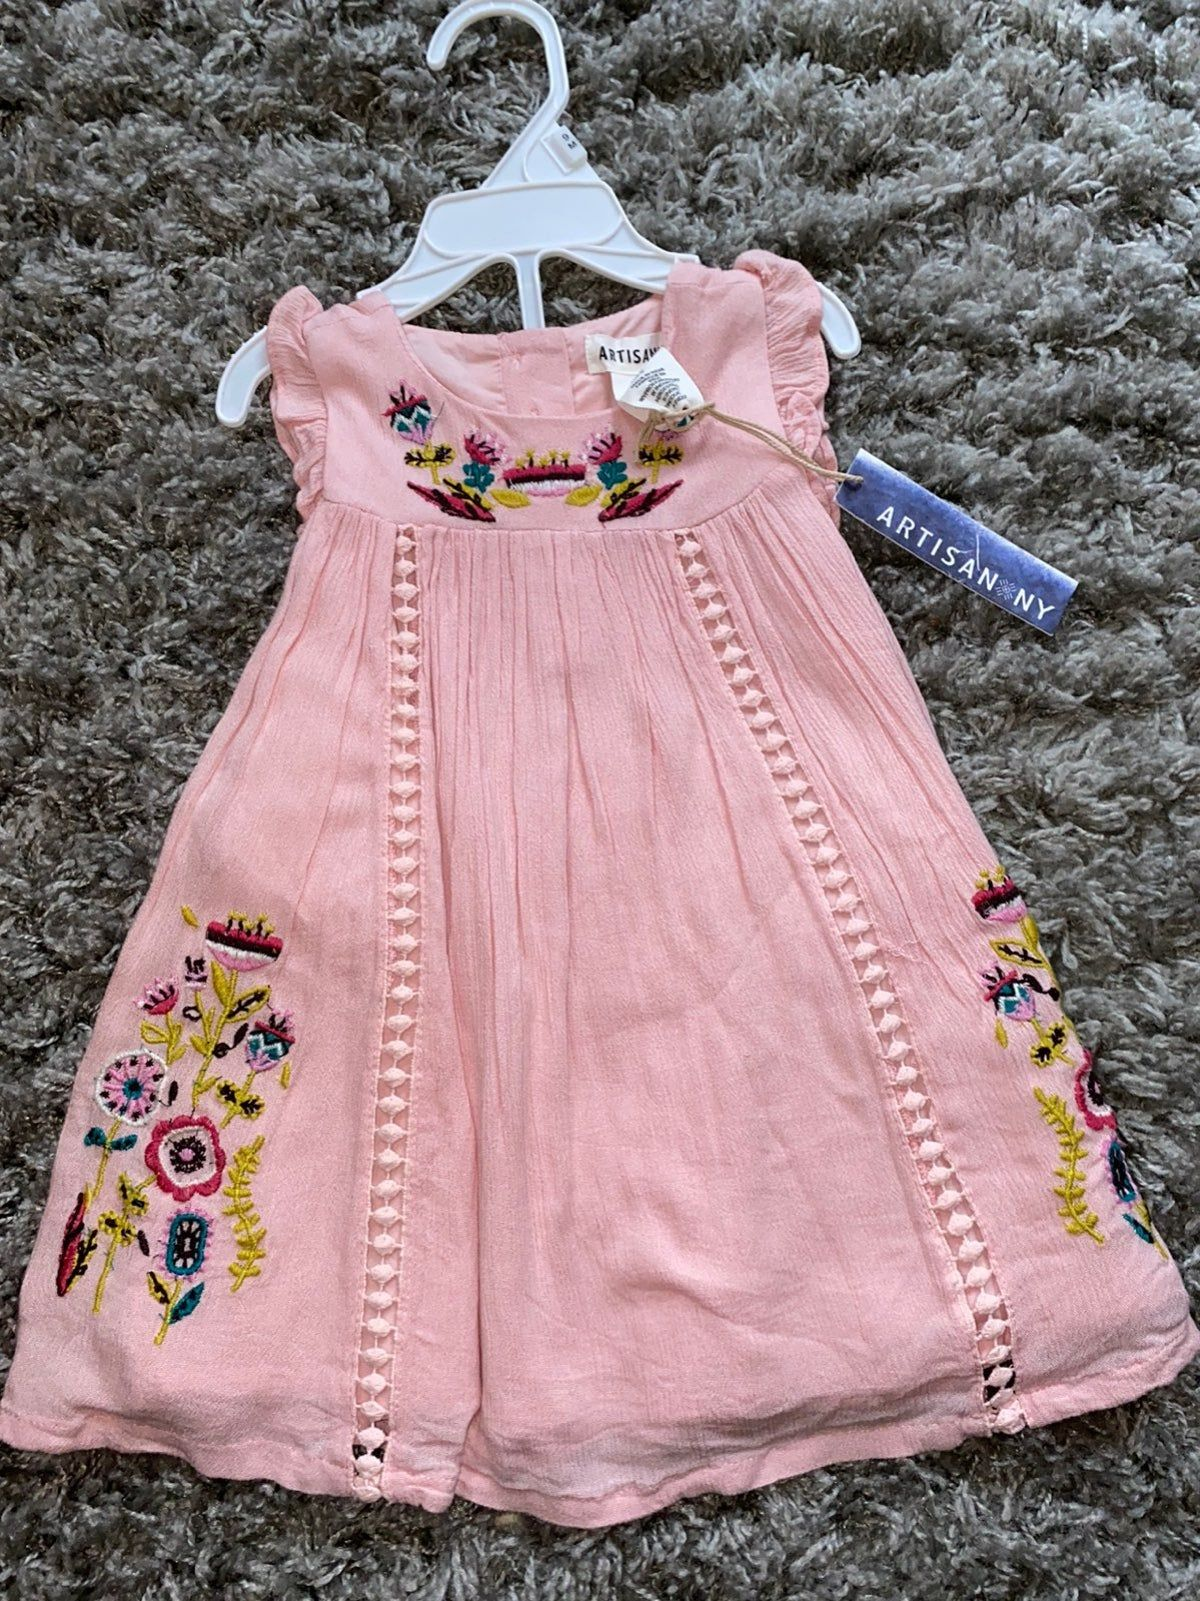 Artisan NY baby girl Dress 5-5 months in 5  Baby frocks